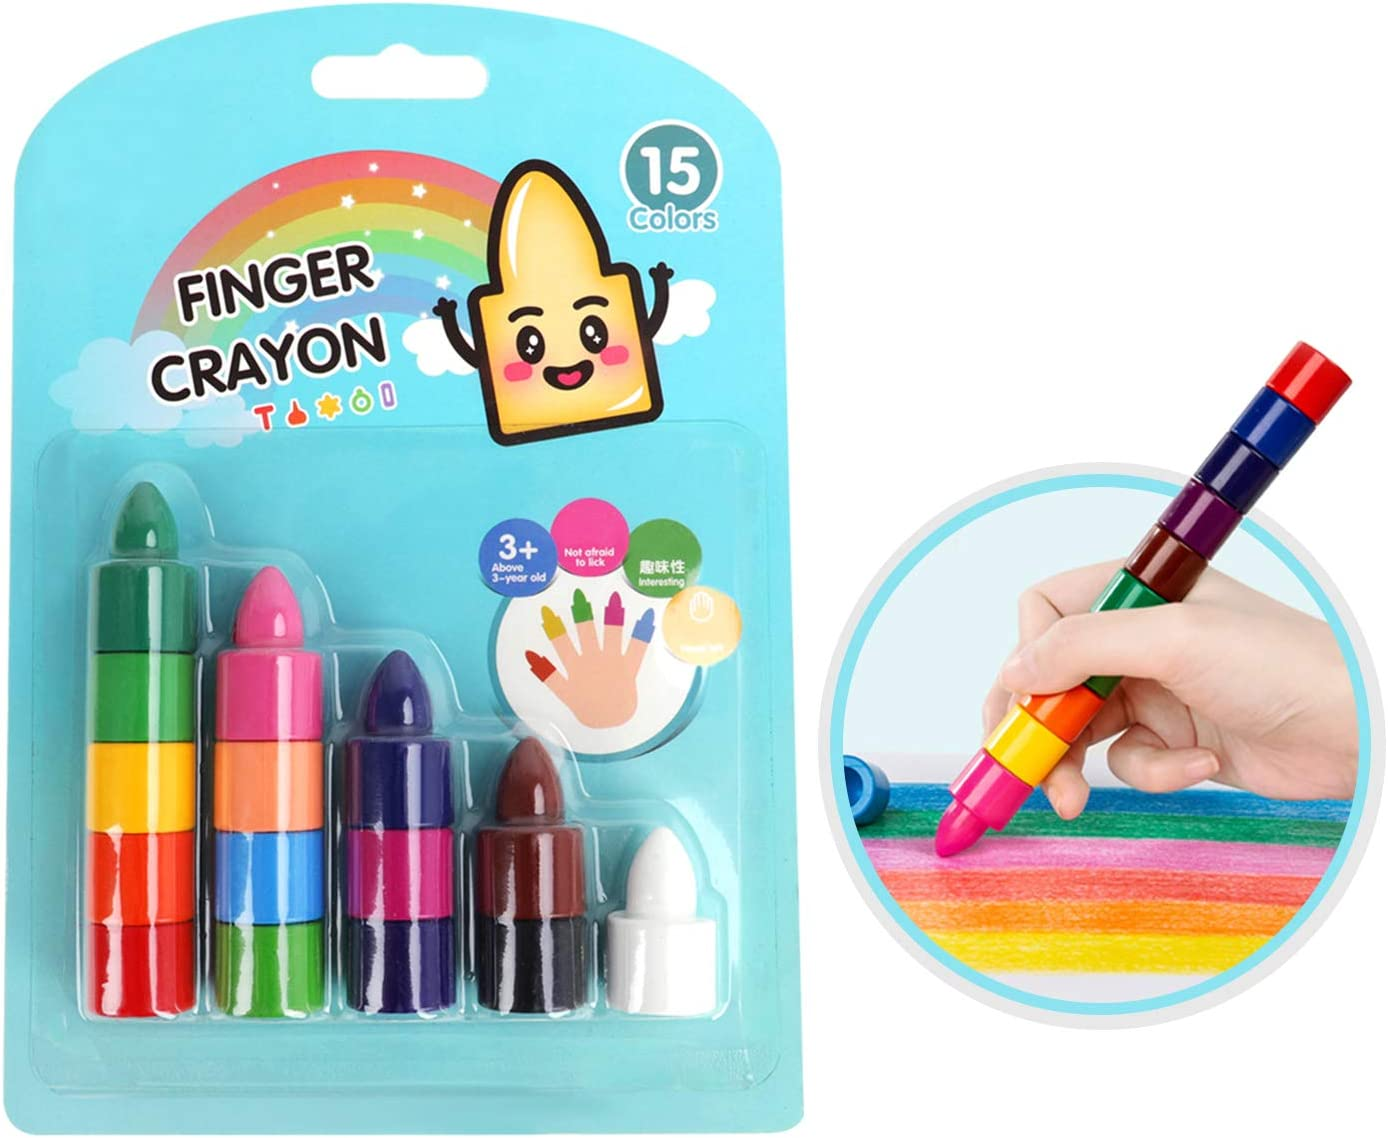 15 Colors Finger Crayons For Toddlers Washable Paint Crayons Sticks Toys for Children Kids Toddlers Baby Boys /& Girls Safe Non-Toxic Stackable Palm-Grip Crayons